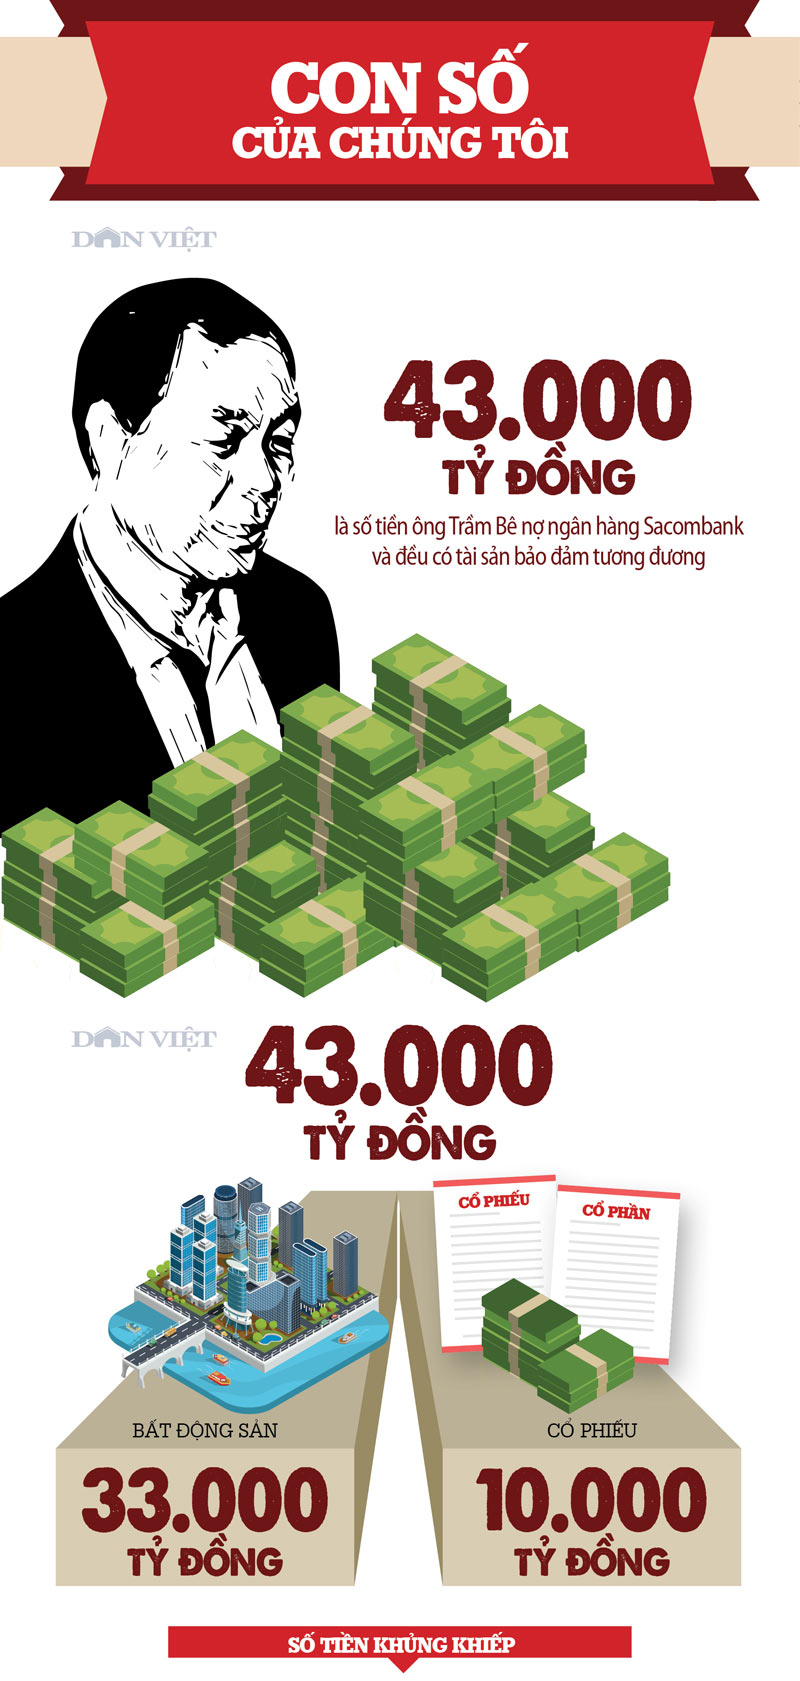 infographic: tram be no tuong duong 900.000 can nha tinh nghia! hinh anh 1